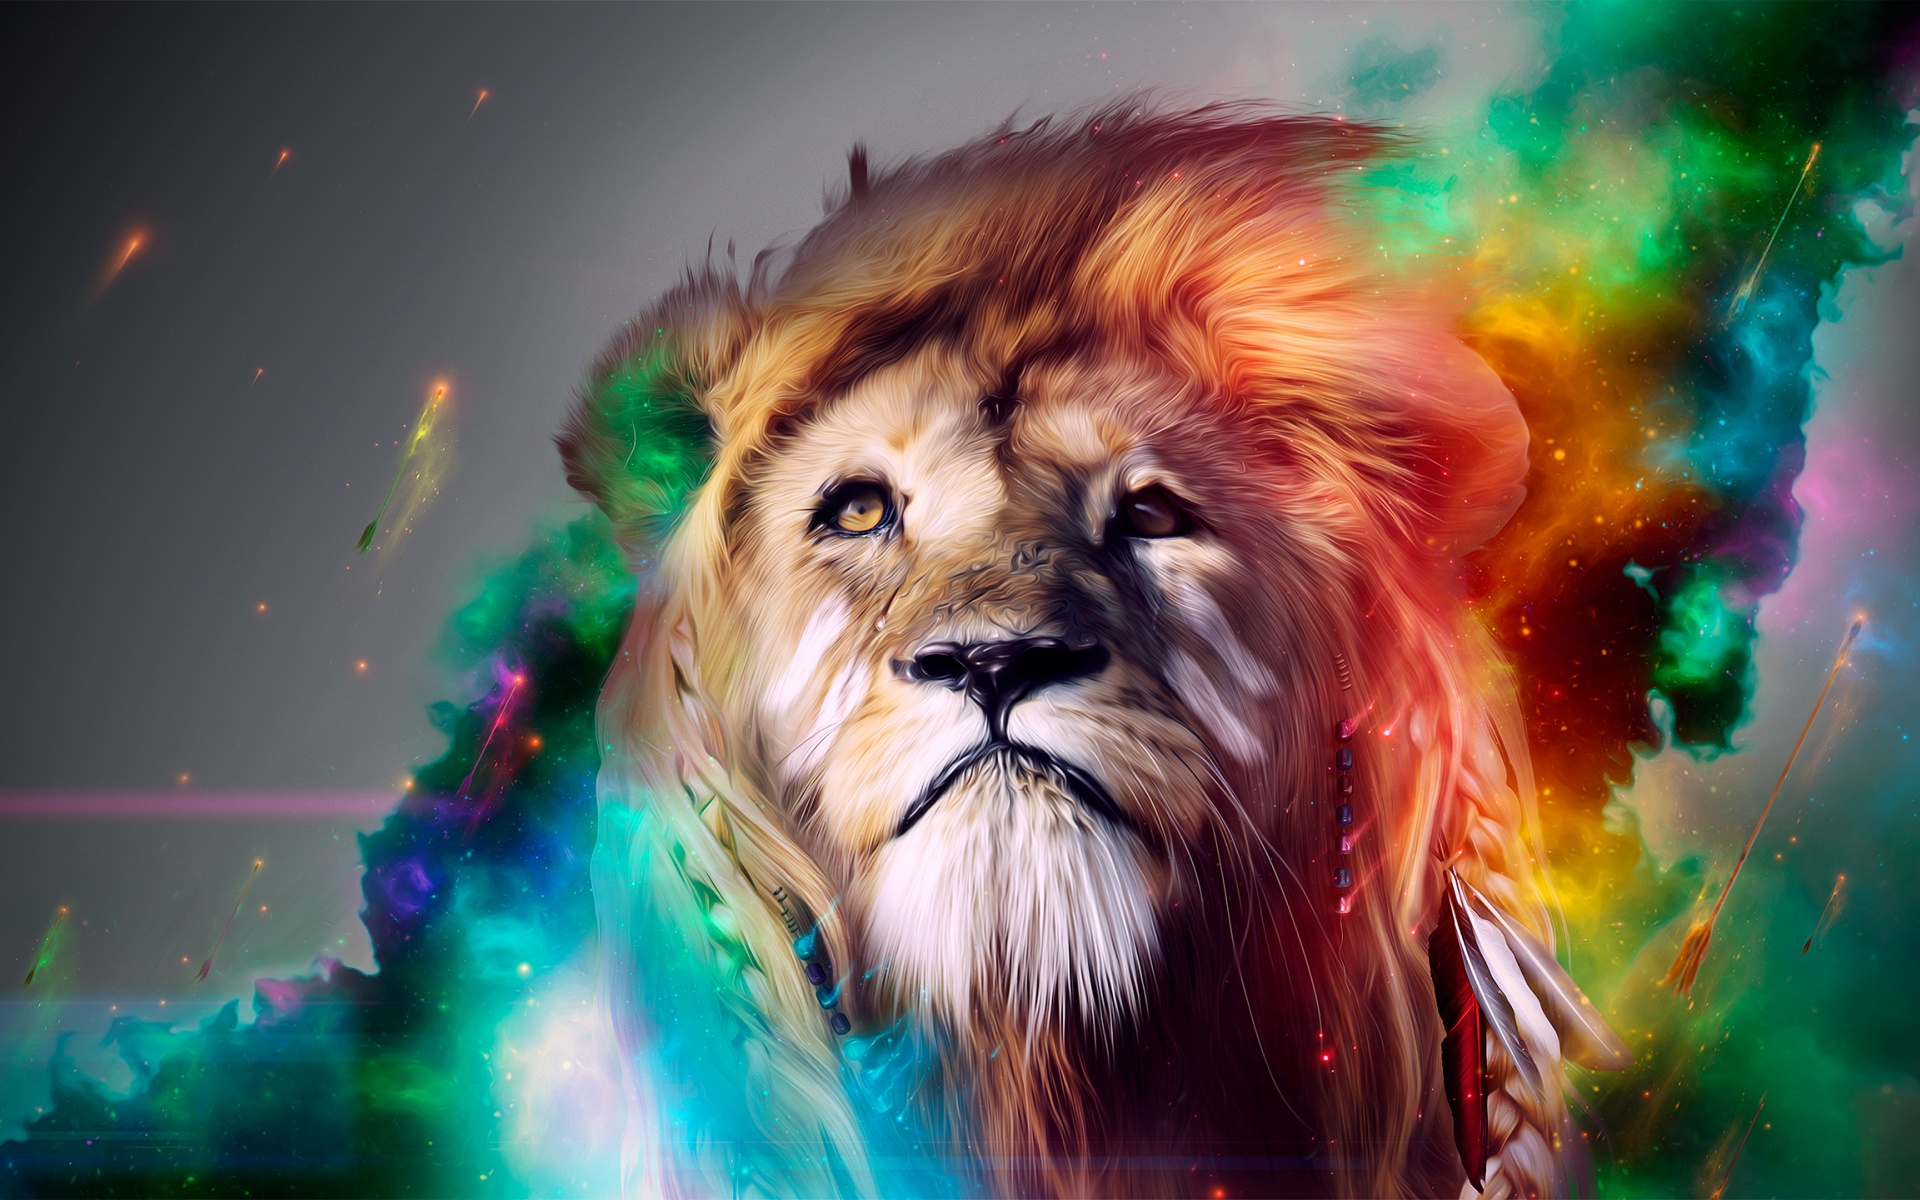 Lion Abstract Wallpapers | HD Wallpapers